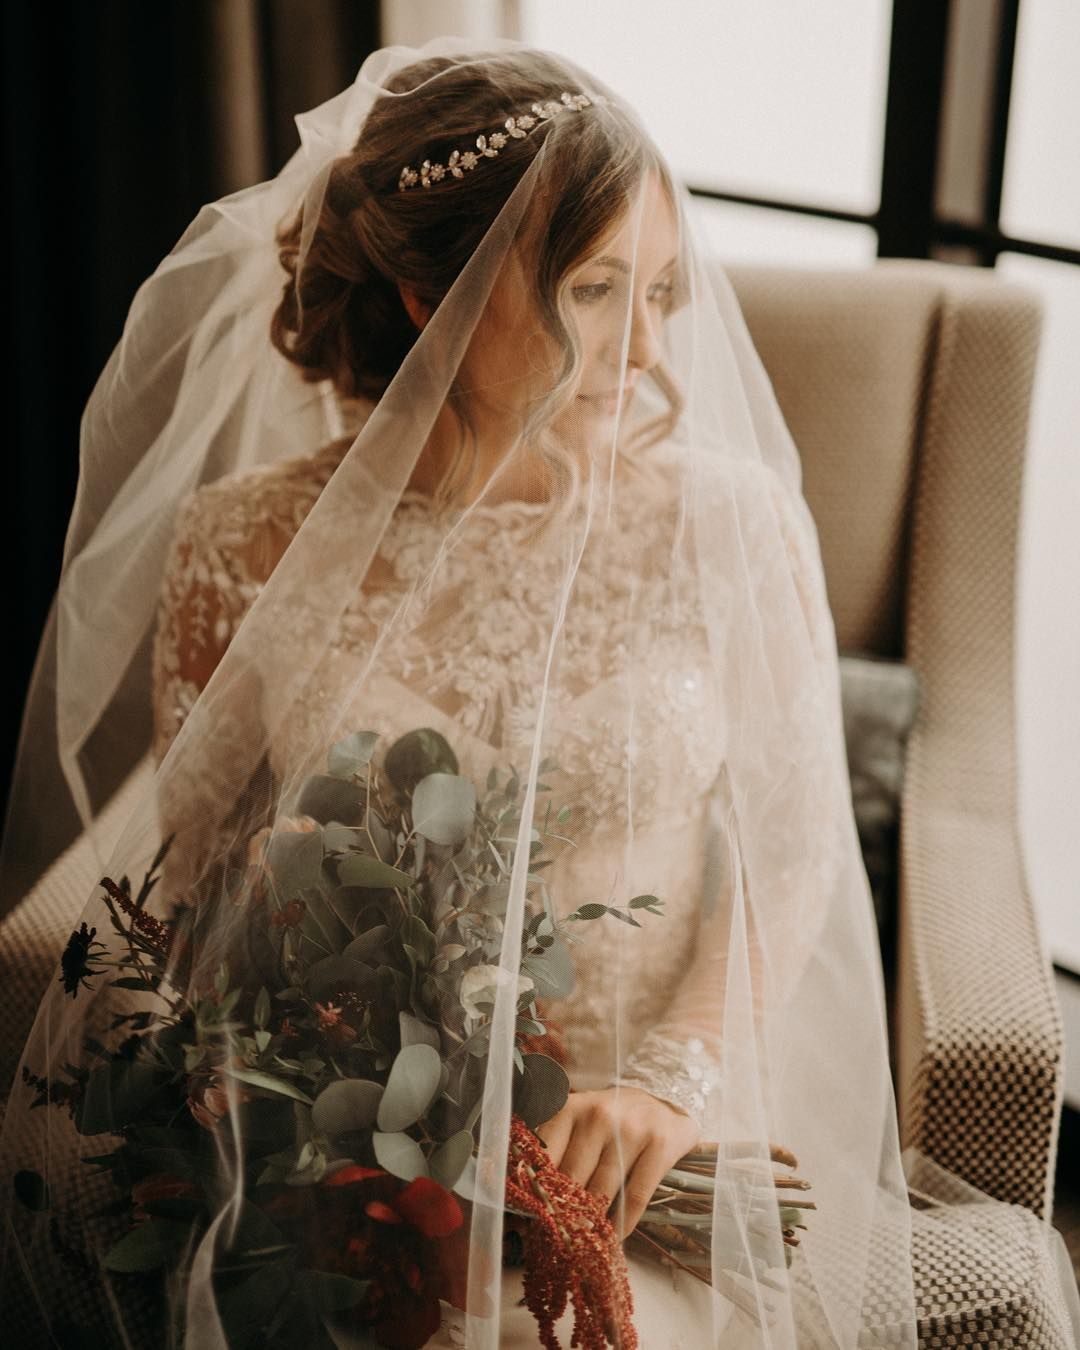 G Presets On Instagram What A Beautiful Portrait Of This Bride By Alor Intimate Wedding Photographer Emotional Wedding Photography Moody Wedding Photography